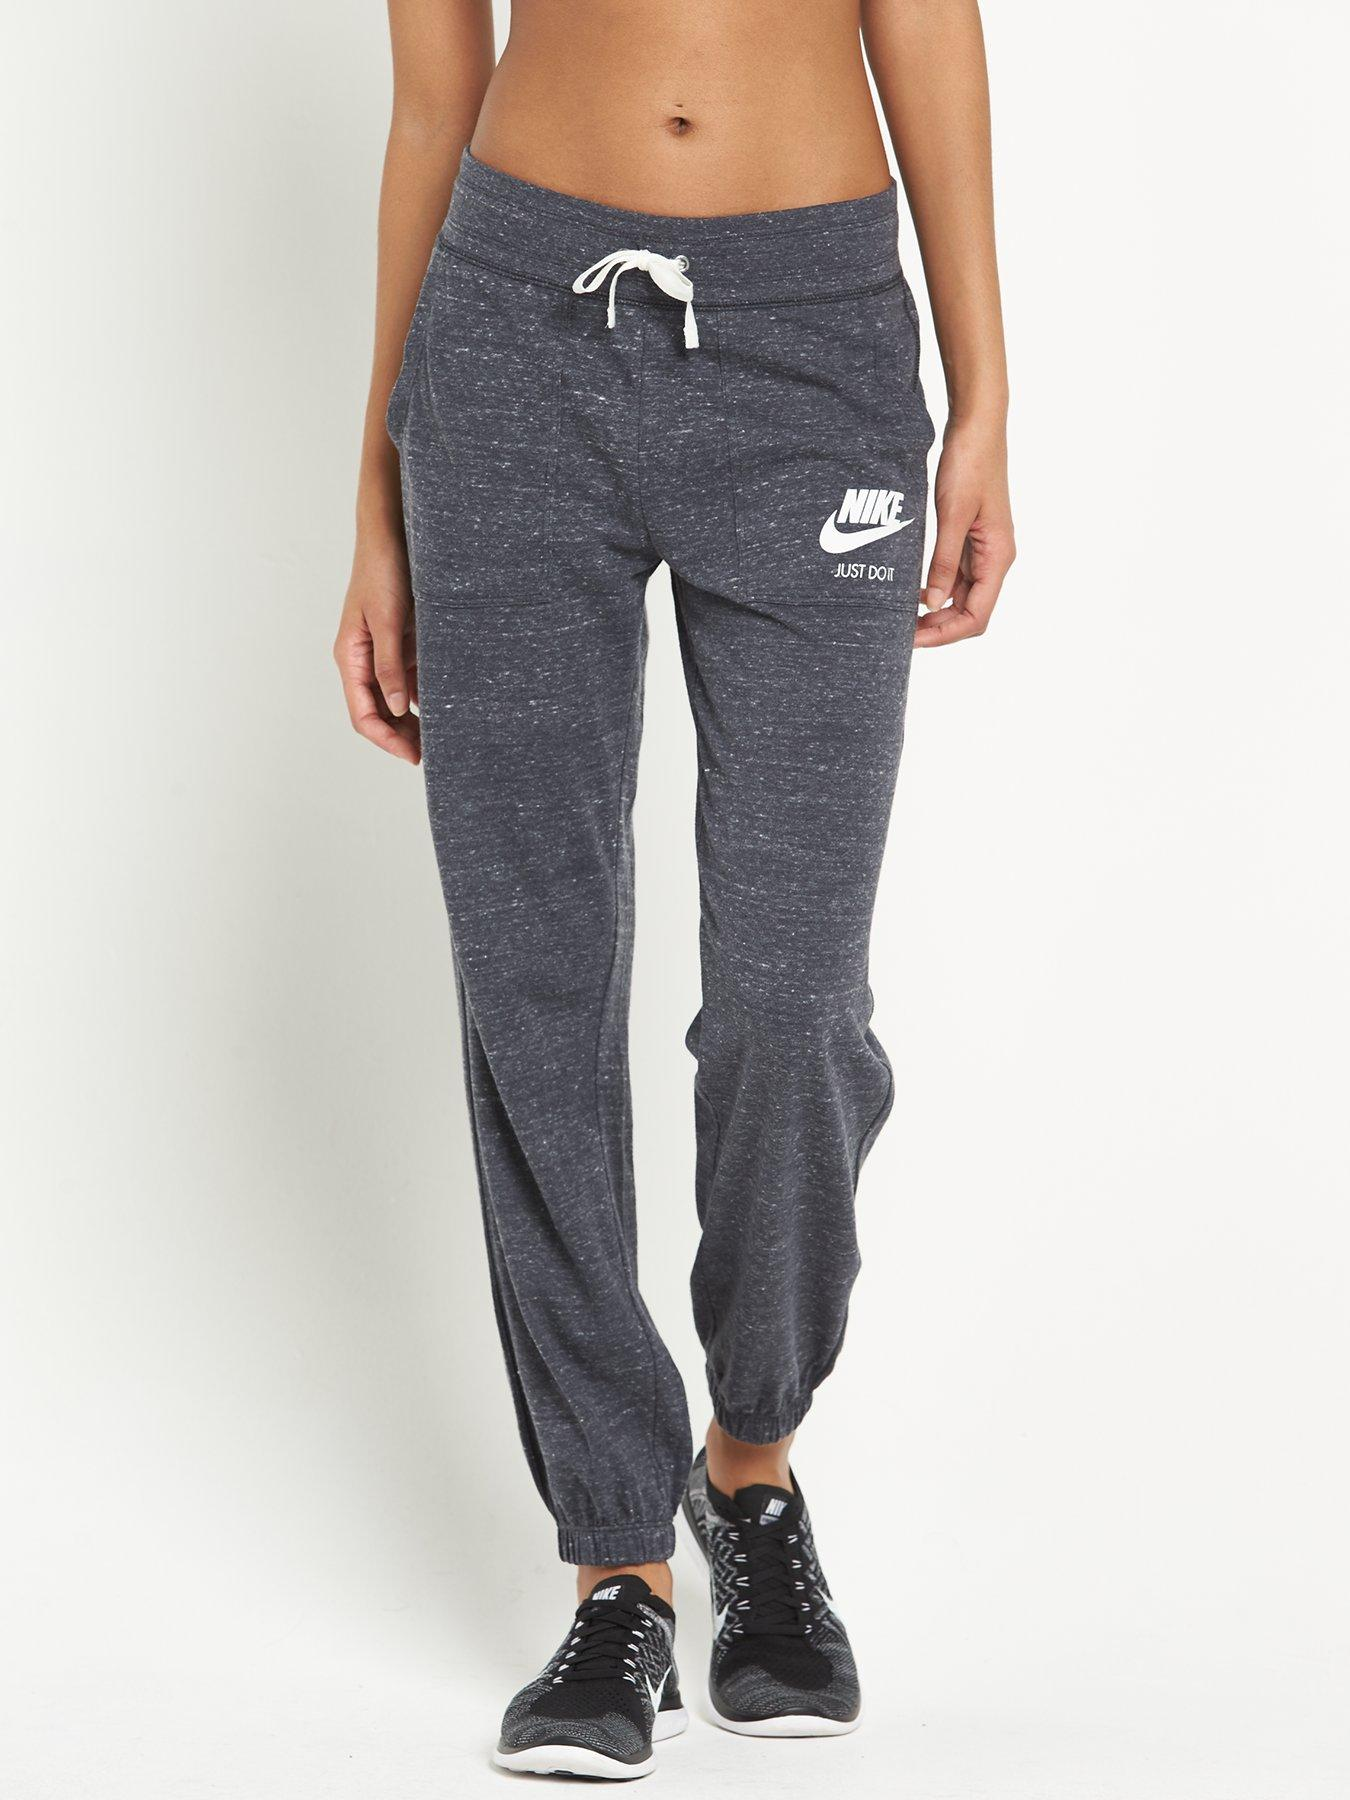 Amazing LADIES WOMENS JOGGERS JOGGING TRACKSUIT BOTTOMS JOG SWEAT PANTS SIZES 10-18 | EBay